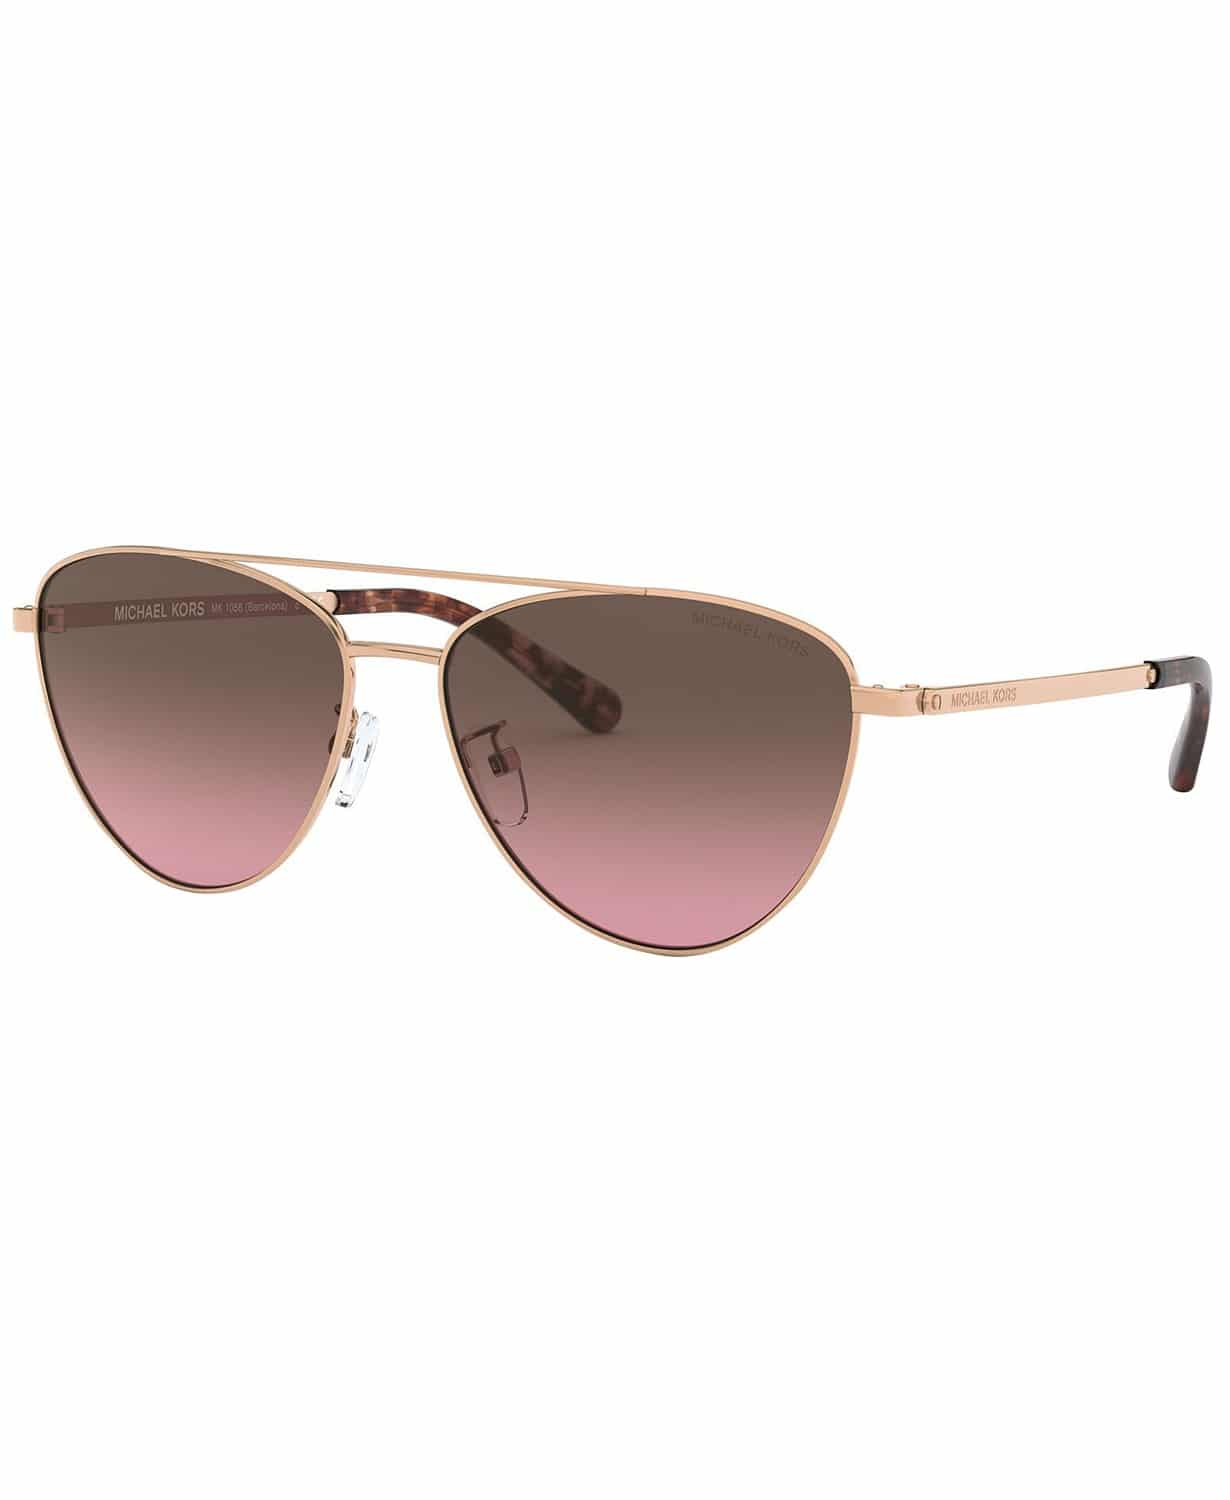 Eyewear by Michael Kors is perfect for any mood. Feel chic, luxurious, sleek and sophisticated in his timeless designs.